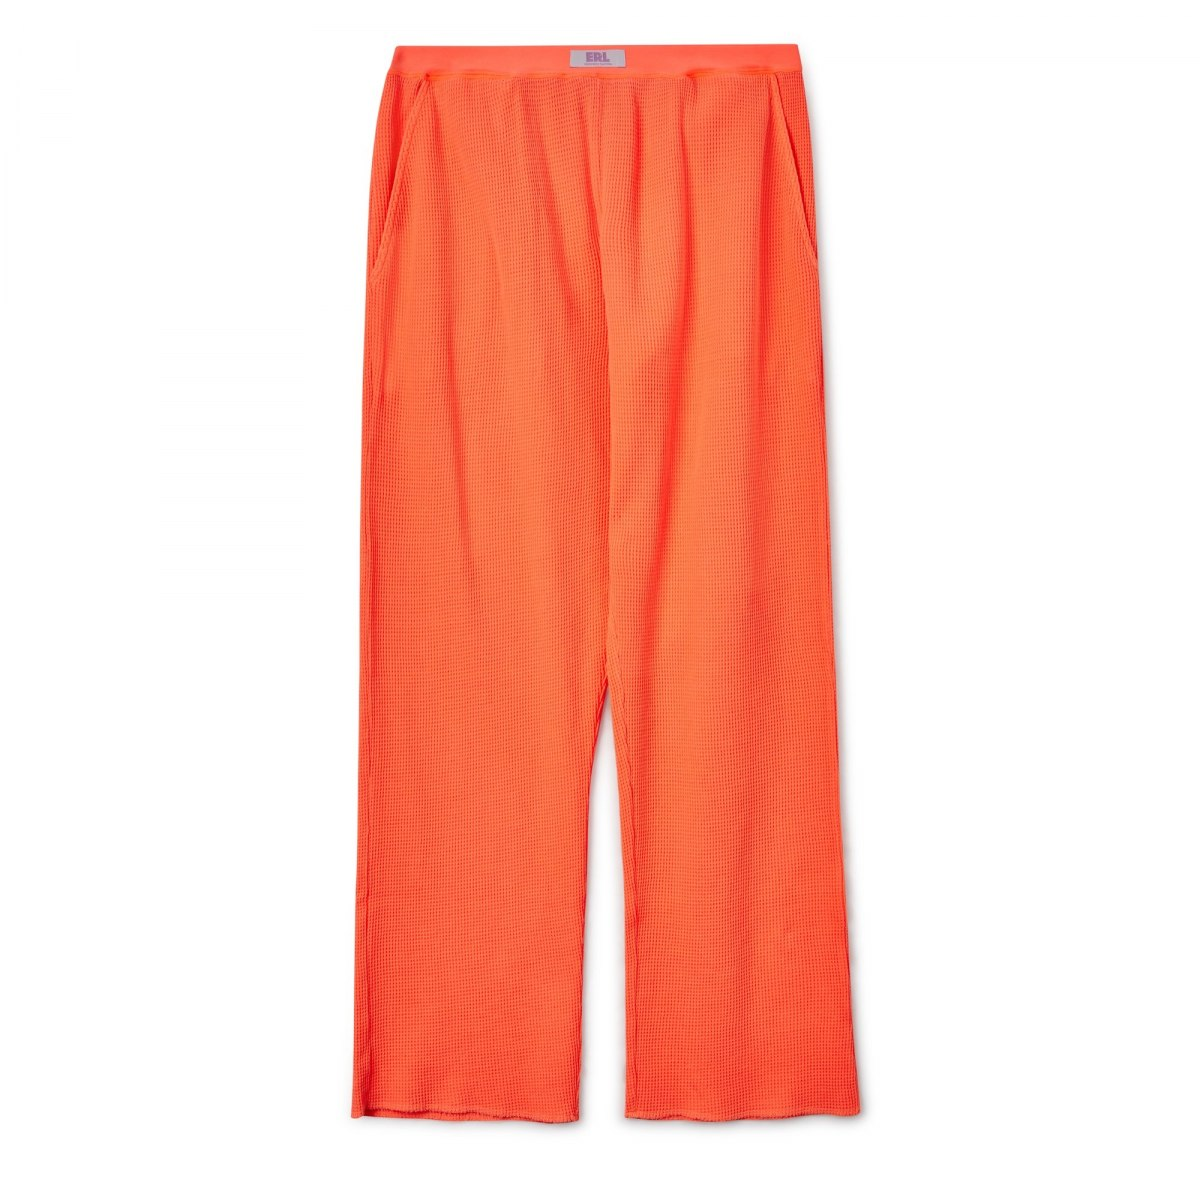 ERL Waffle Pants (Neon Orange) by Dsmny E-Shop, available on doverstreetmarket.com Kylie Jenner Pants Exact Product